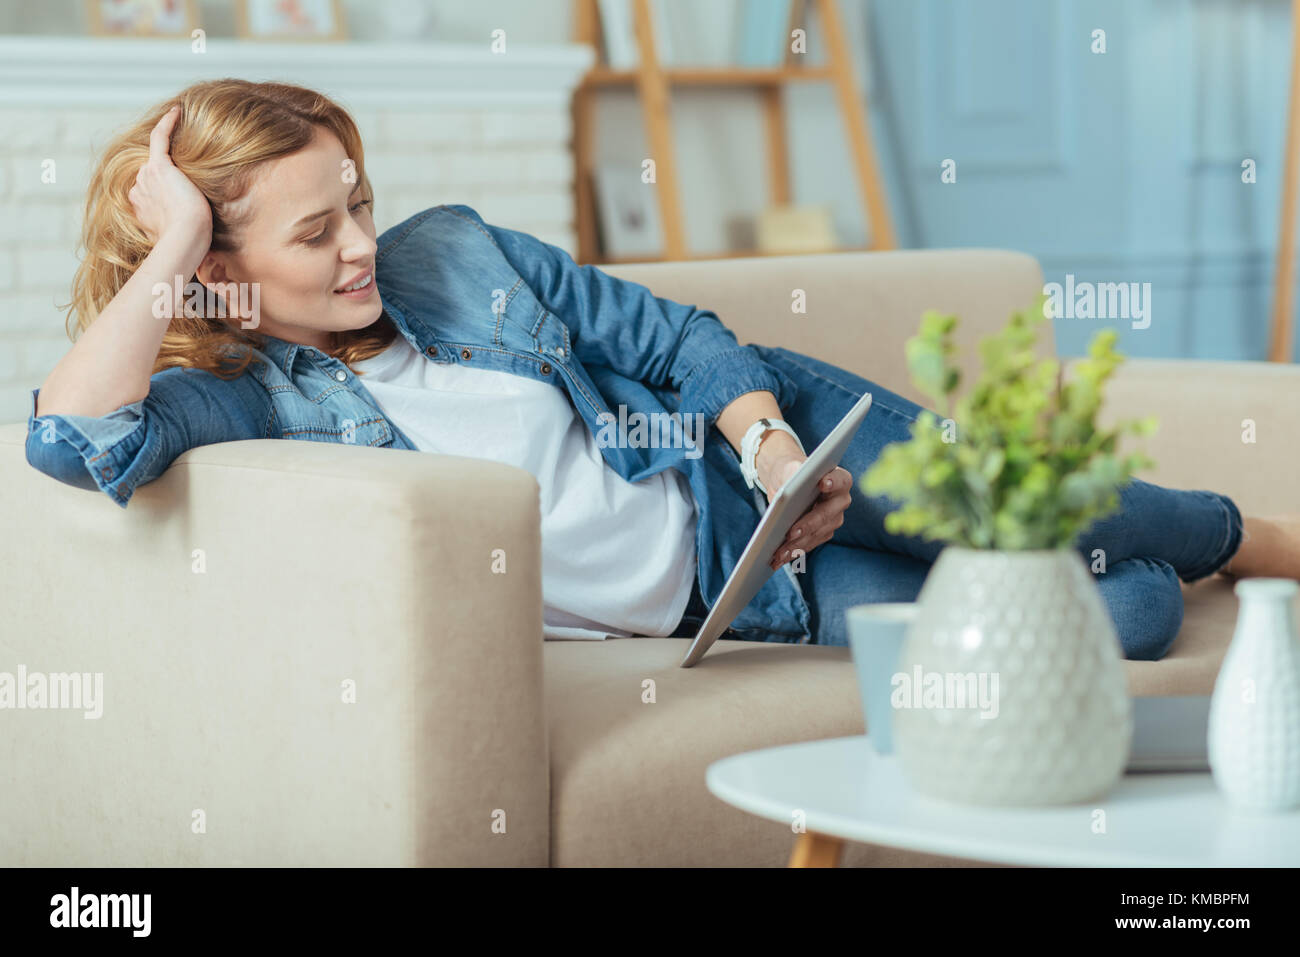 Positive relaxing woman reading a book on a tablet and smiling - Stock Image